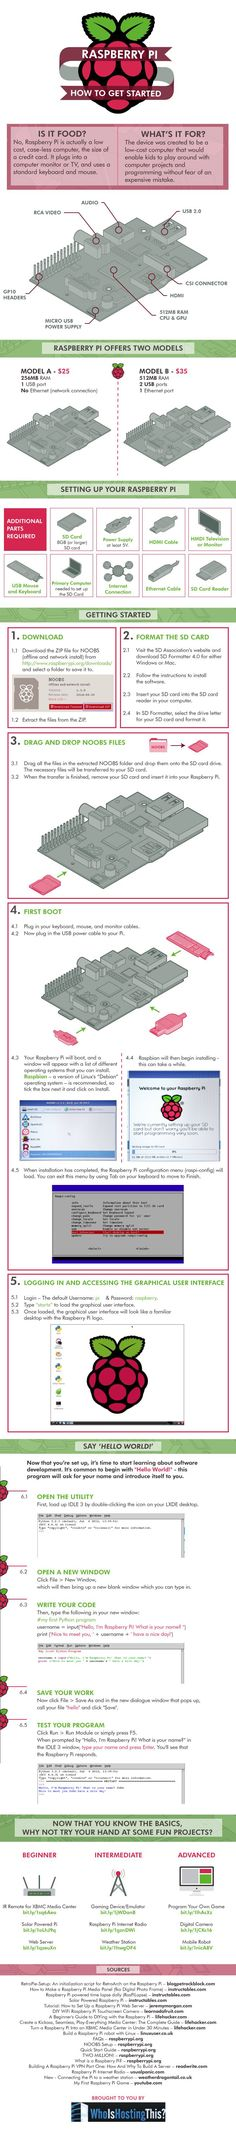 Raspberry Pi | How To Get Started